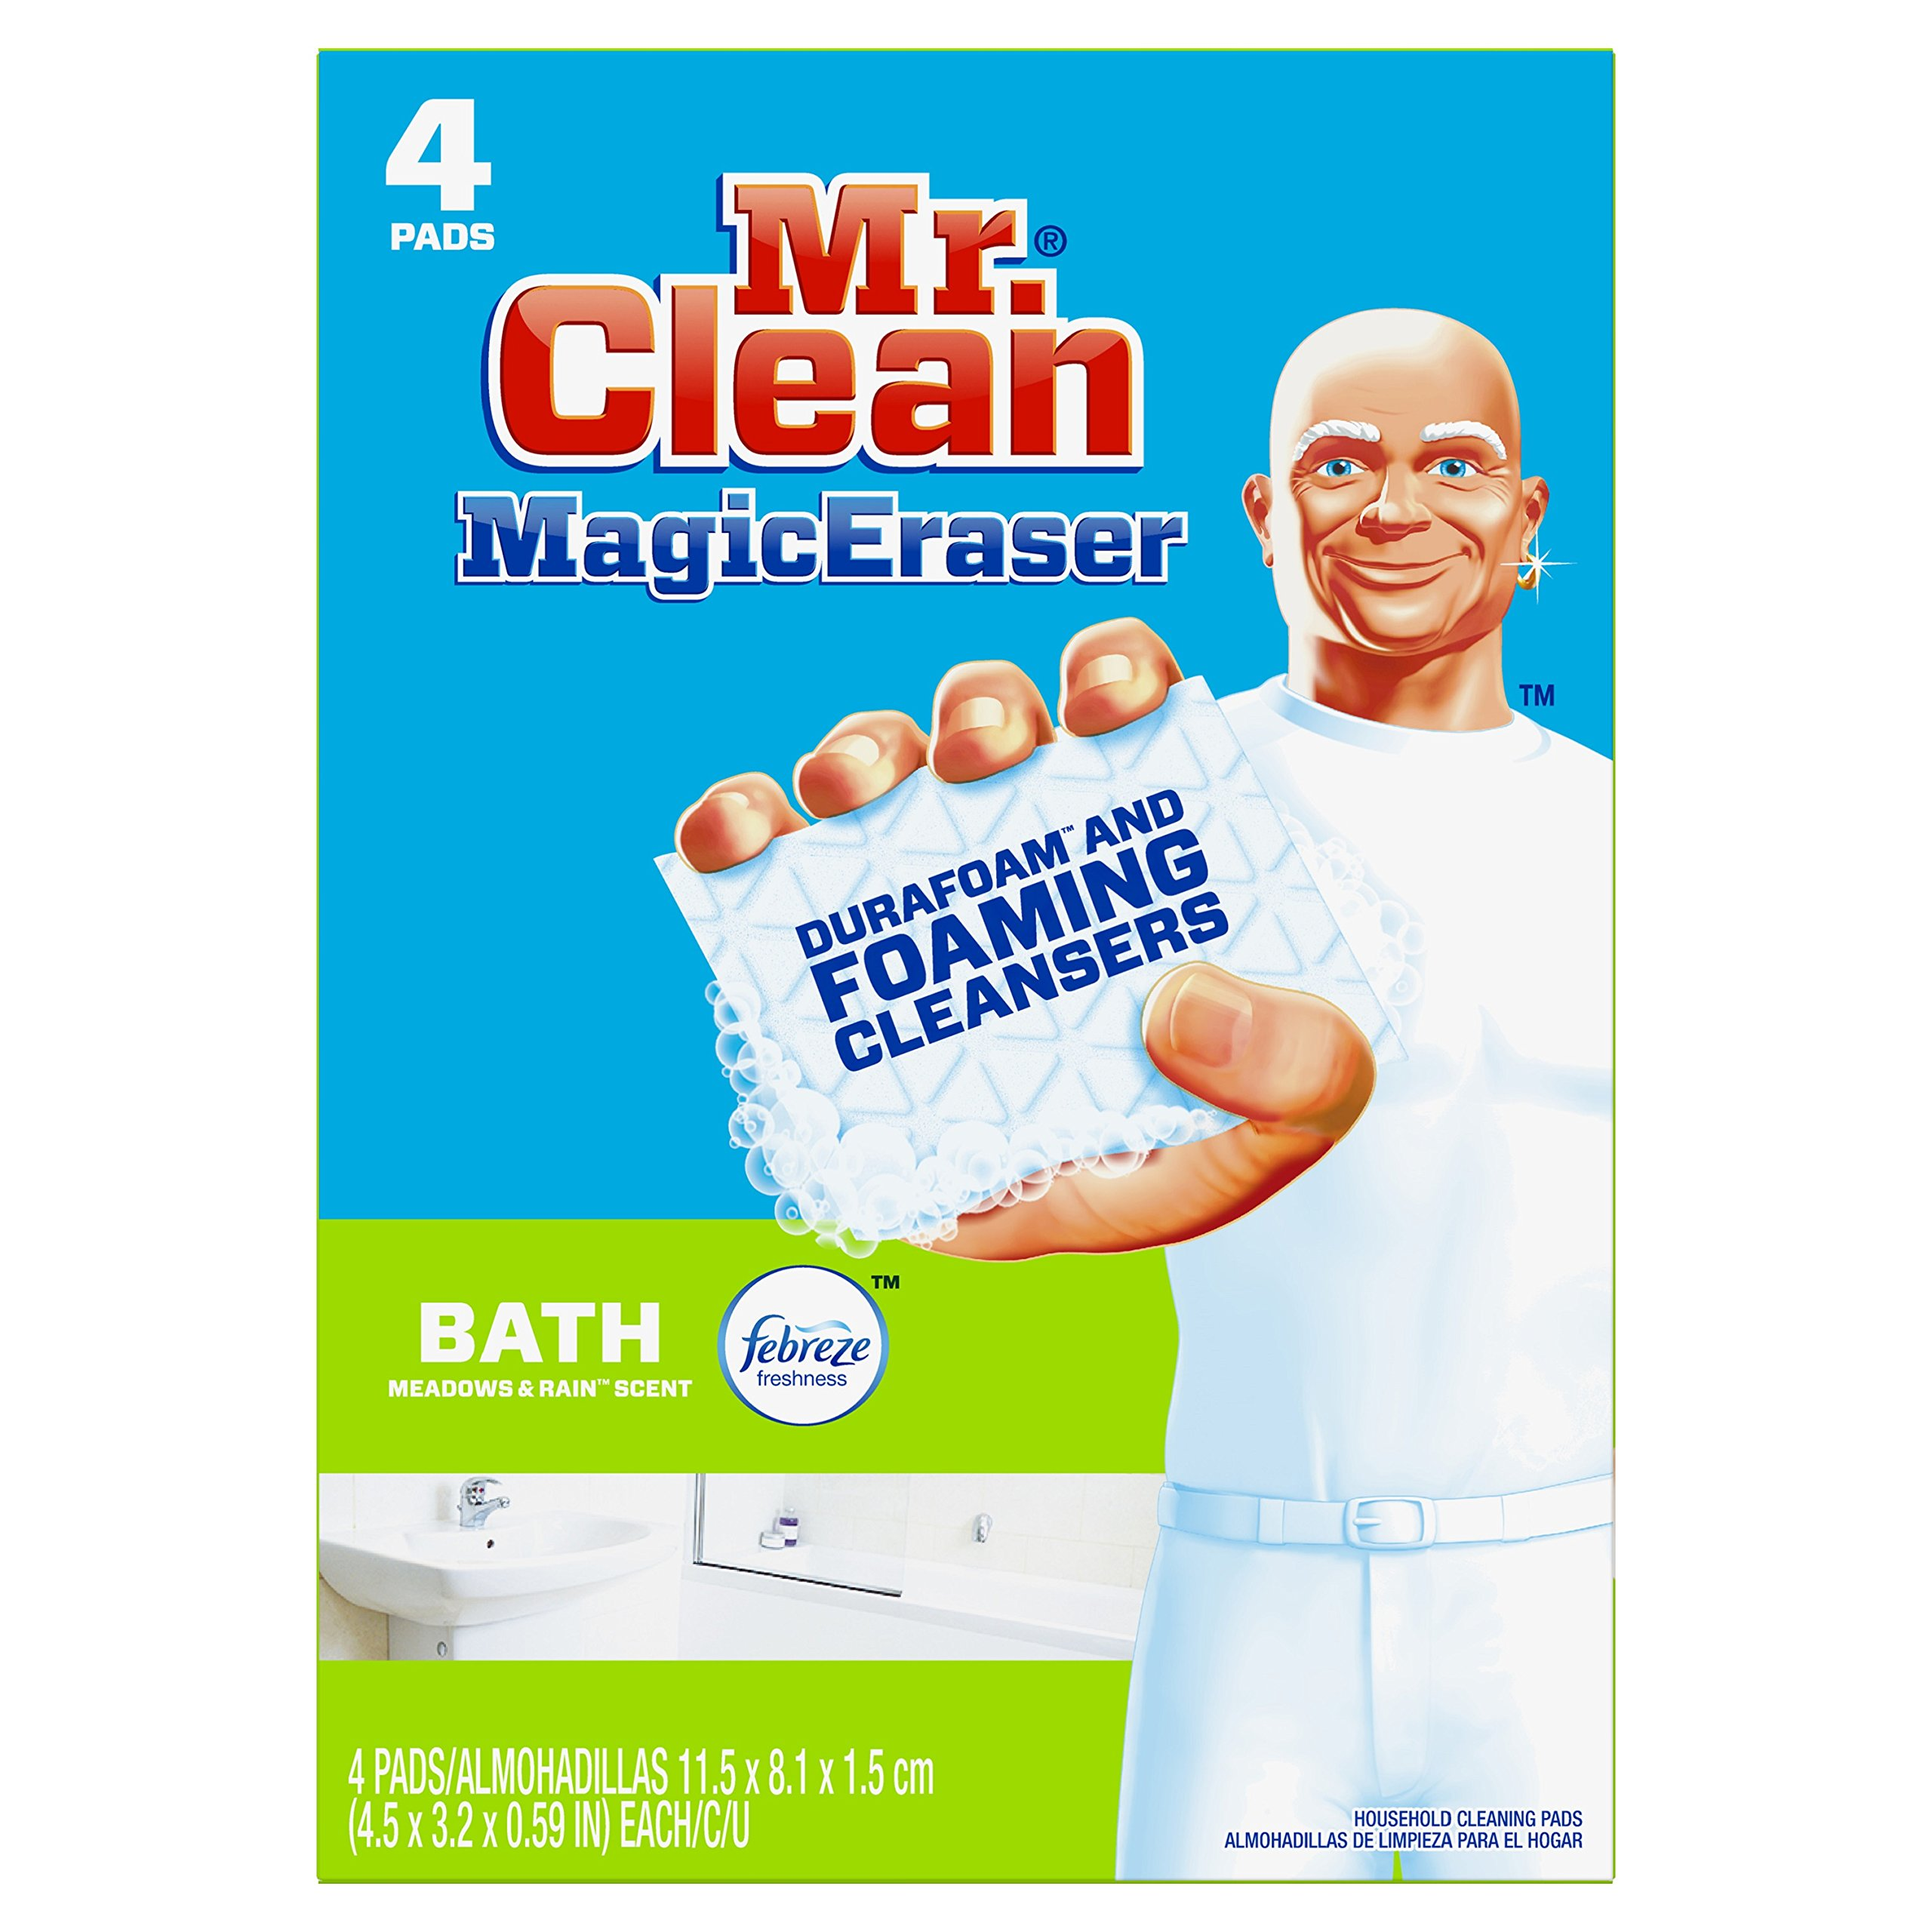 Mr. Clean Magic Eraser Bath, Cleaning Pads with Durafoam, Meadows & Rain, 4 Count (Packaging May Vary)